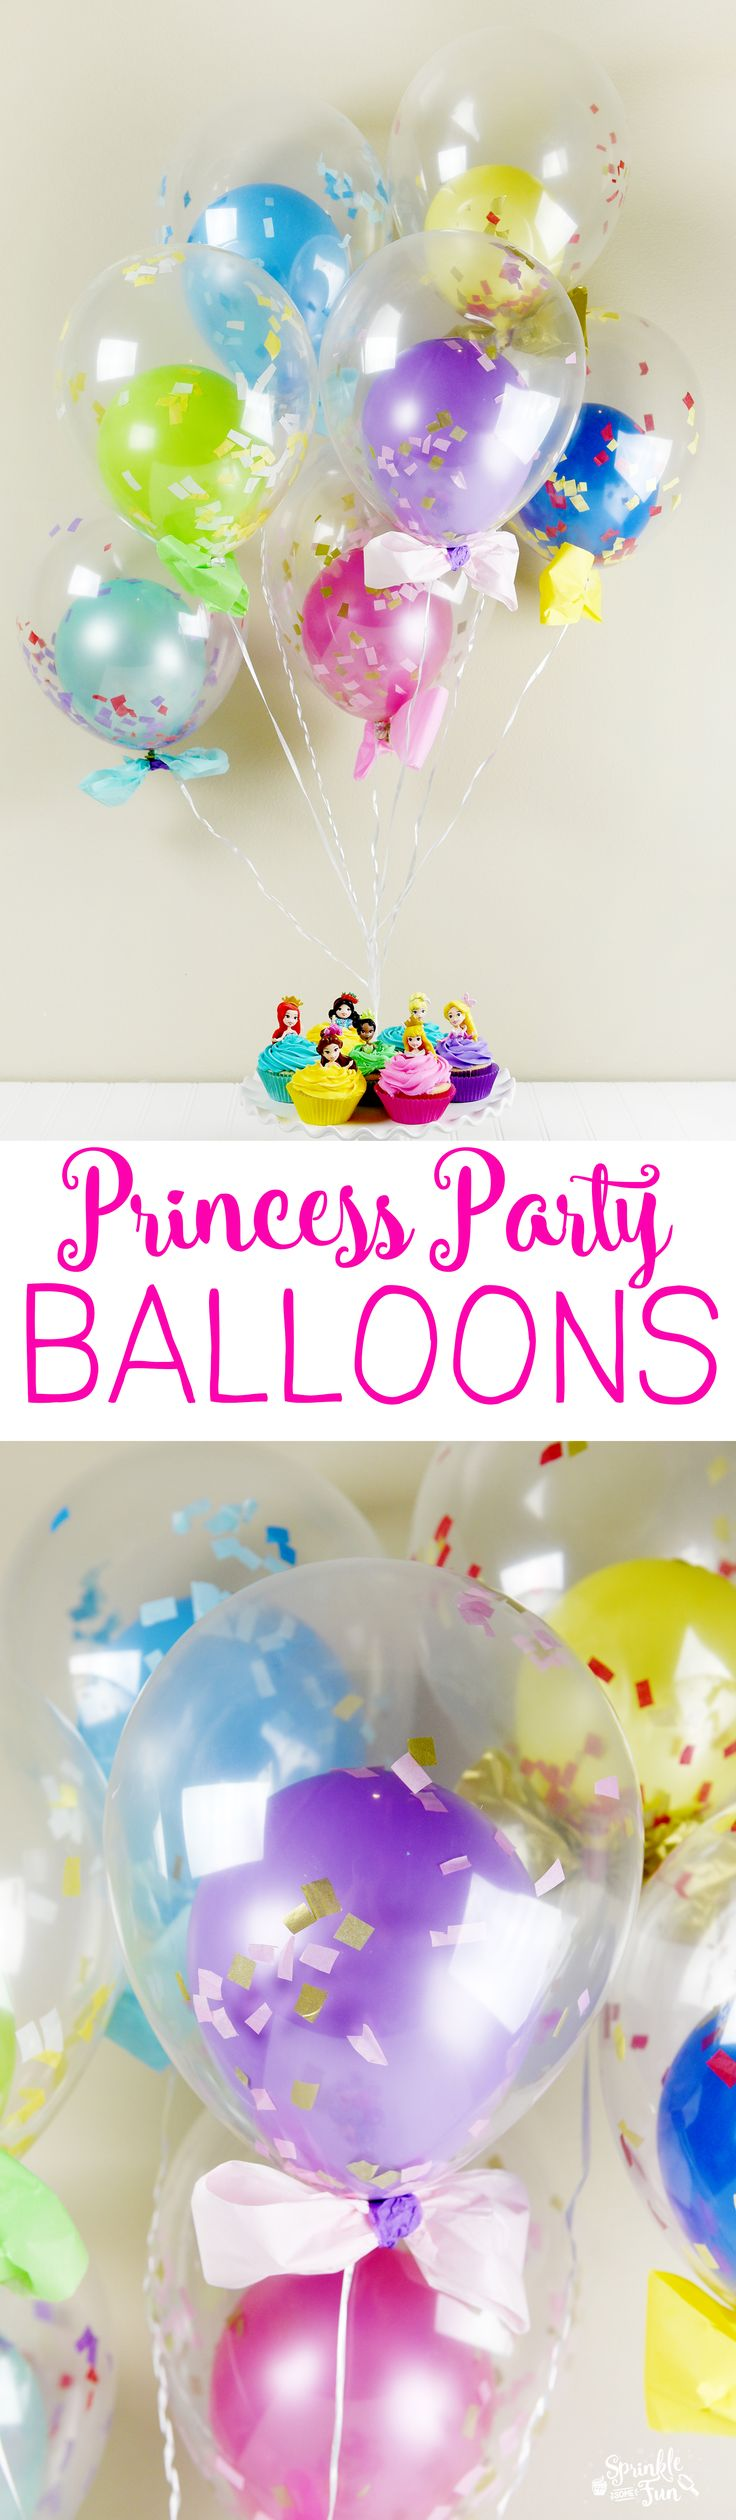 These princess party balloons have a bright colored ballon inside of a clear balloon, confetti and bows to match each princess.